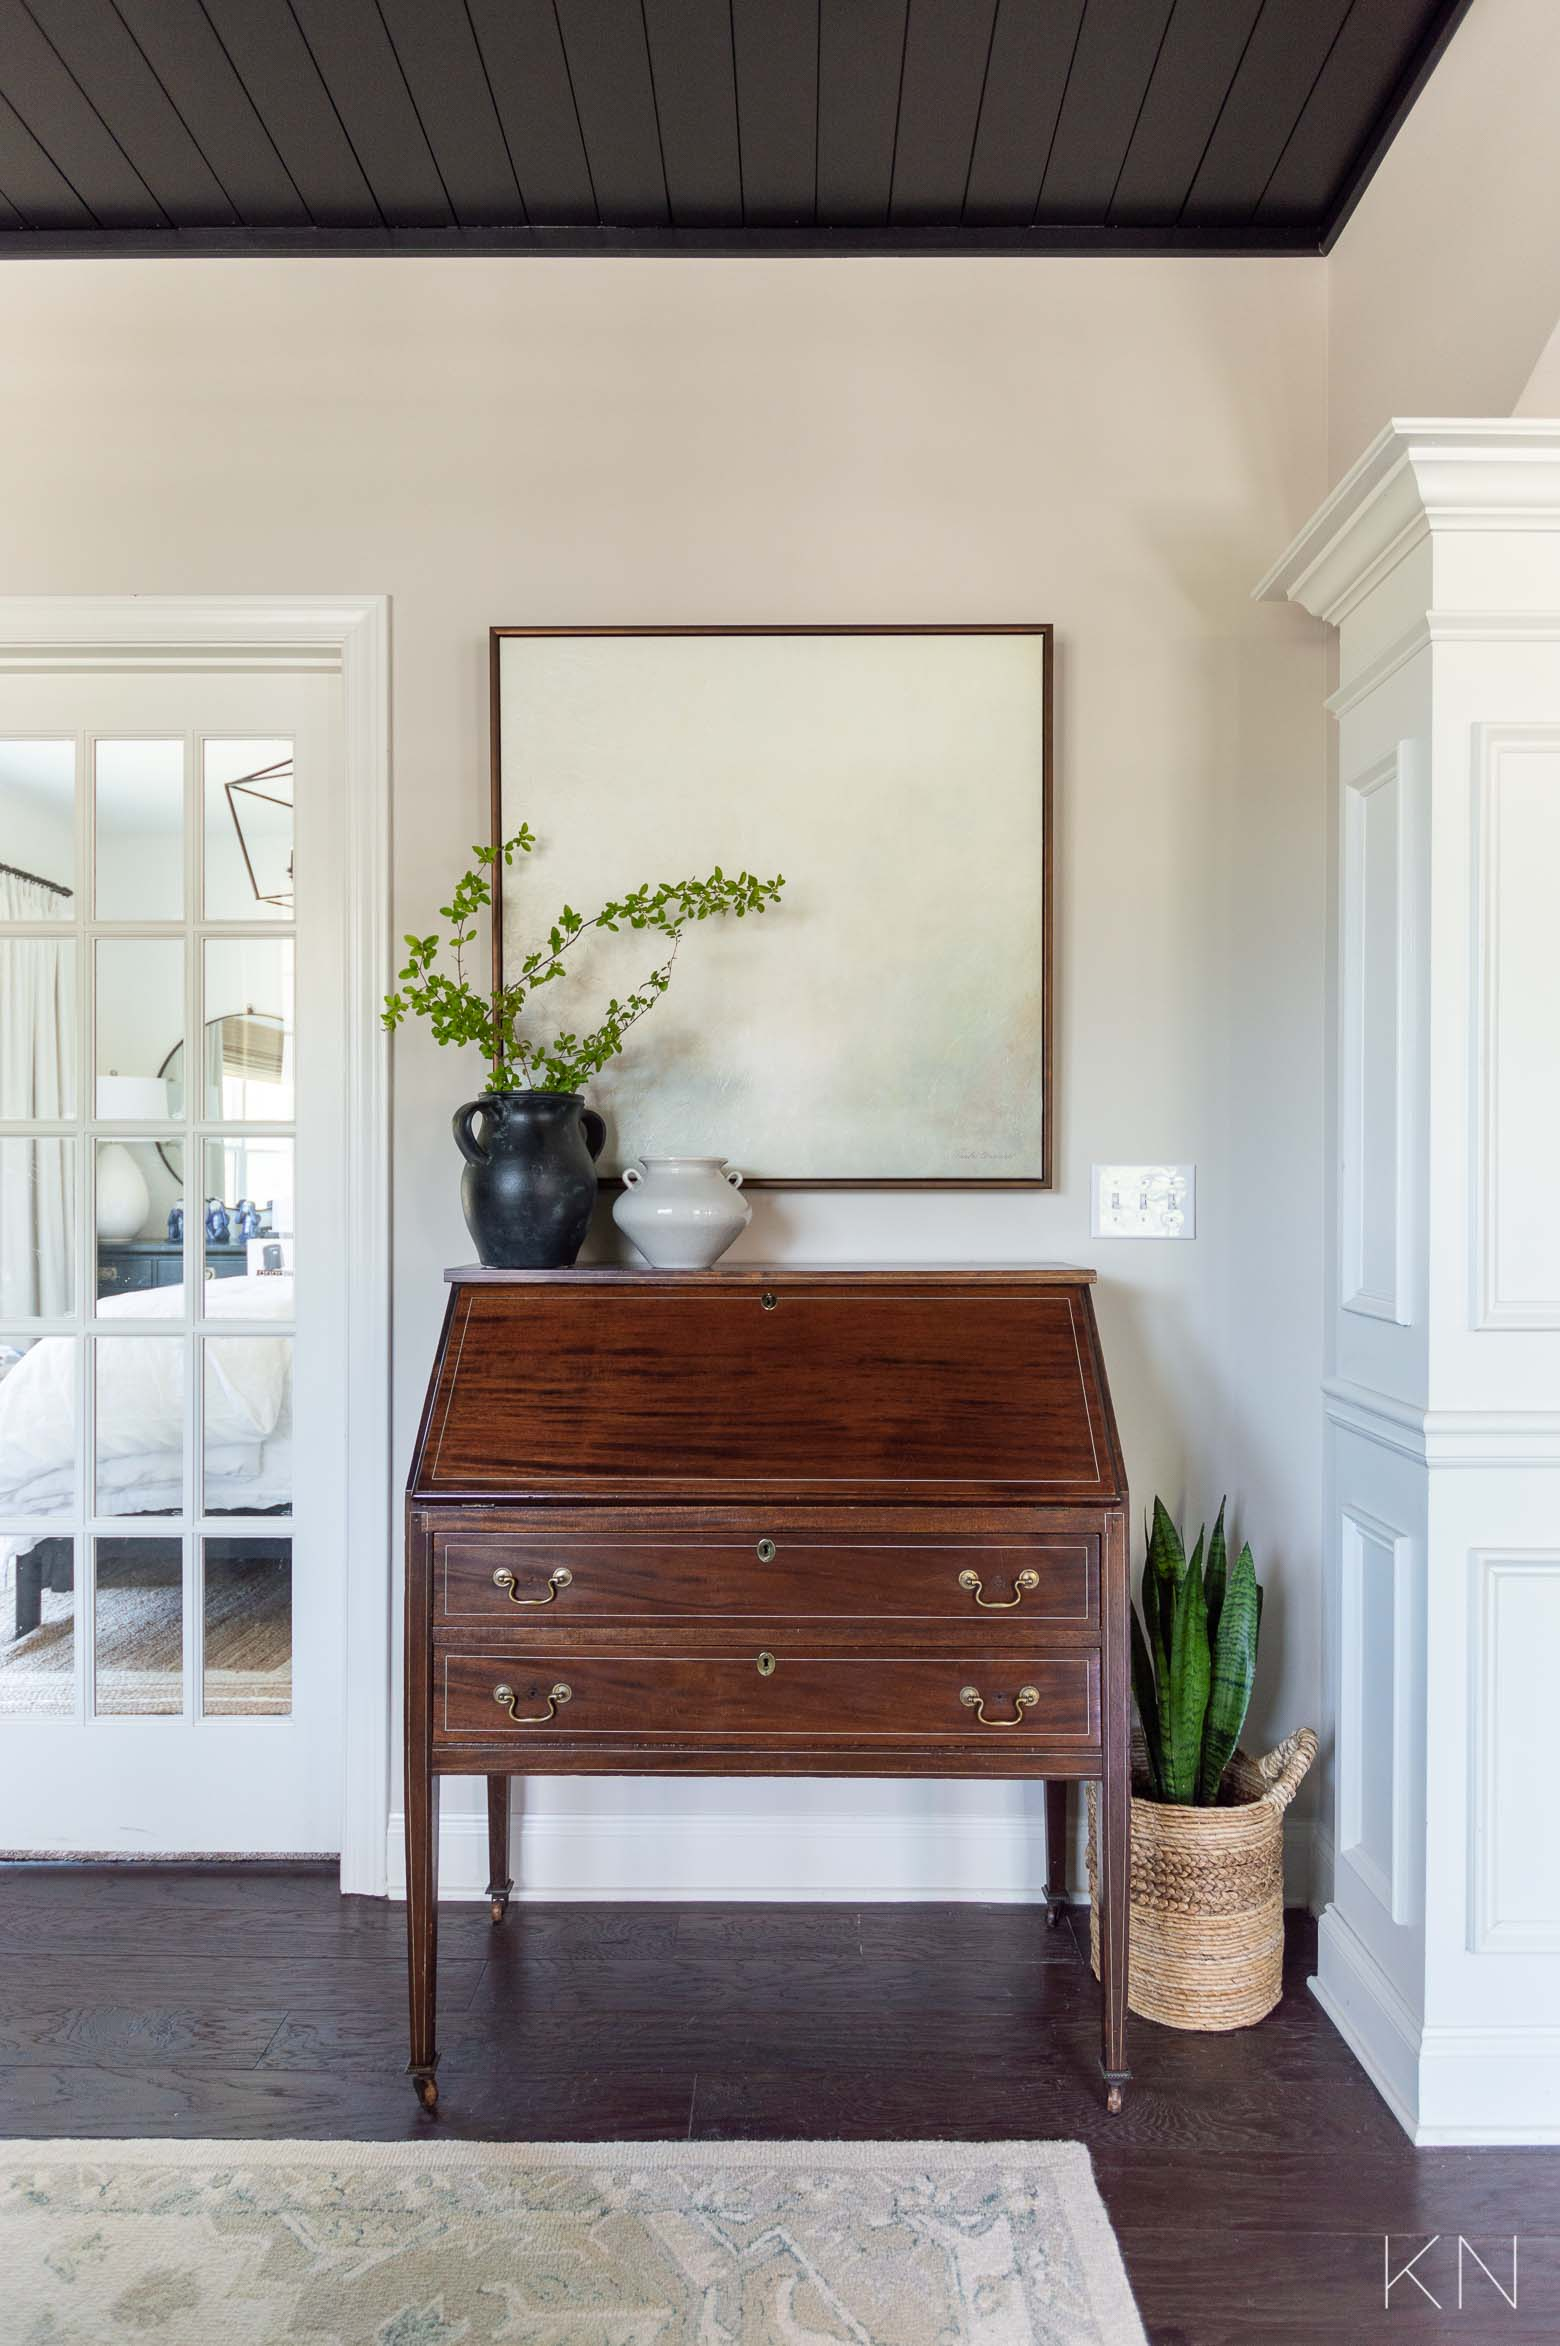 How to Use Antique Pieces in Modern and Transitional Decor